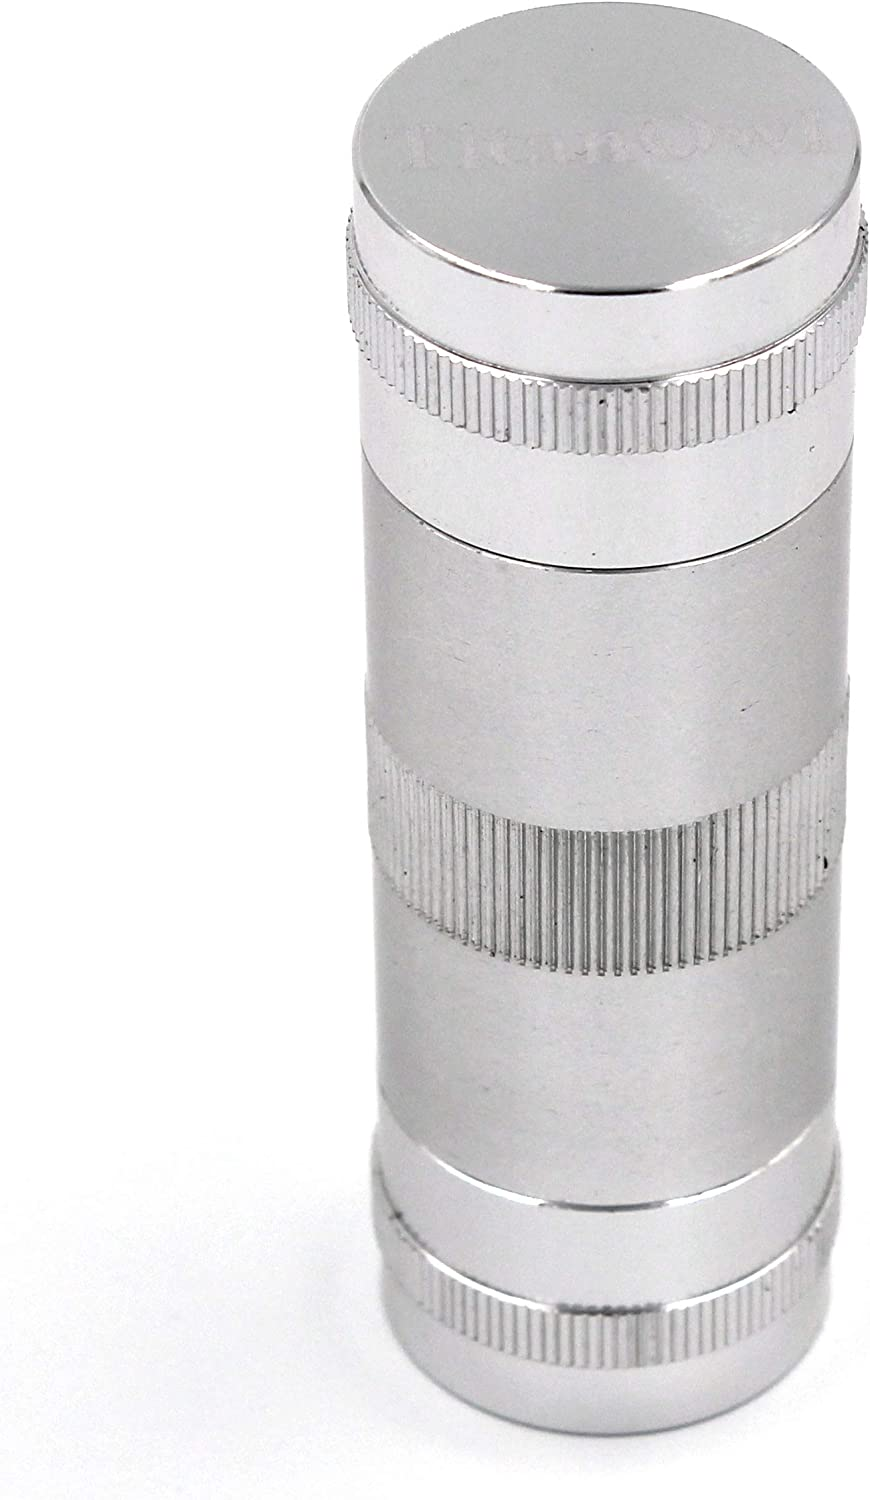 Portable Ashtray Stash Safe Spice Press Tool Tough Aluminum CNC 5 Piece 3.5 inch 2 Dowels Silver Black